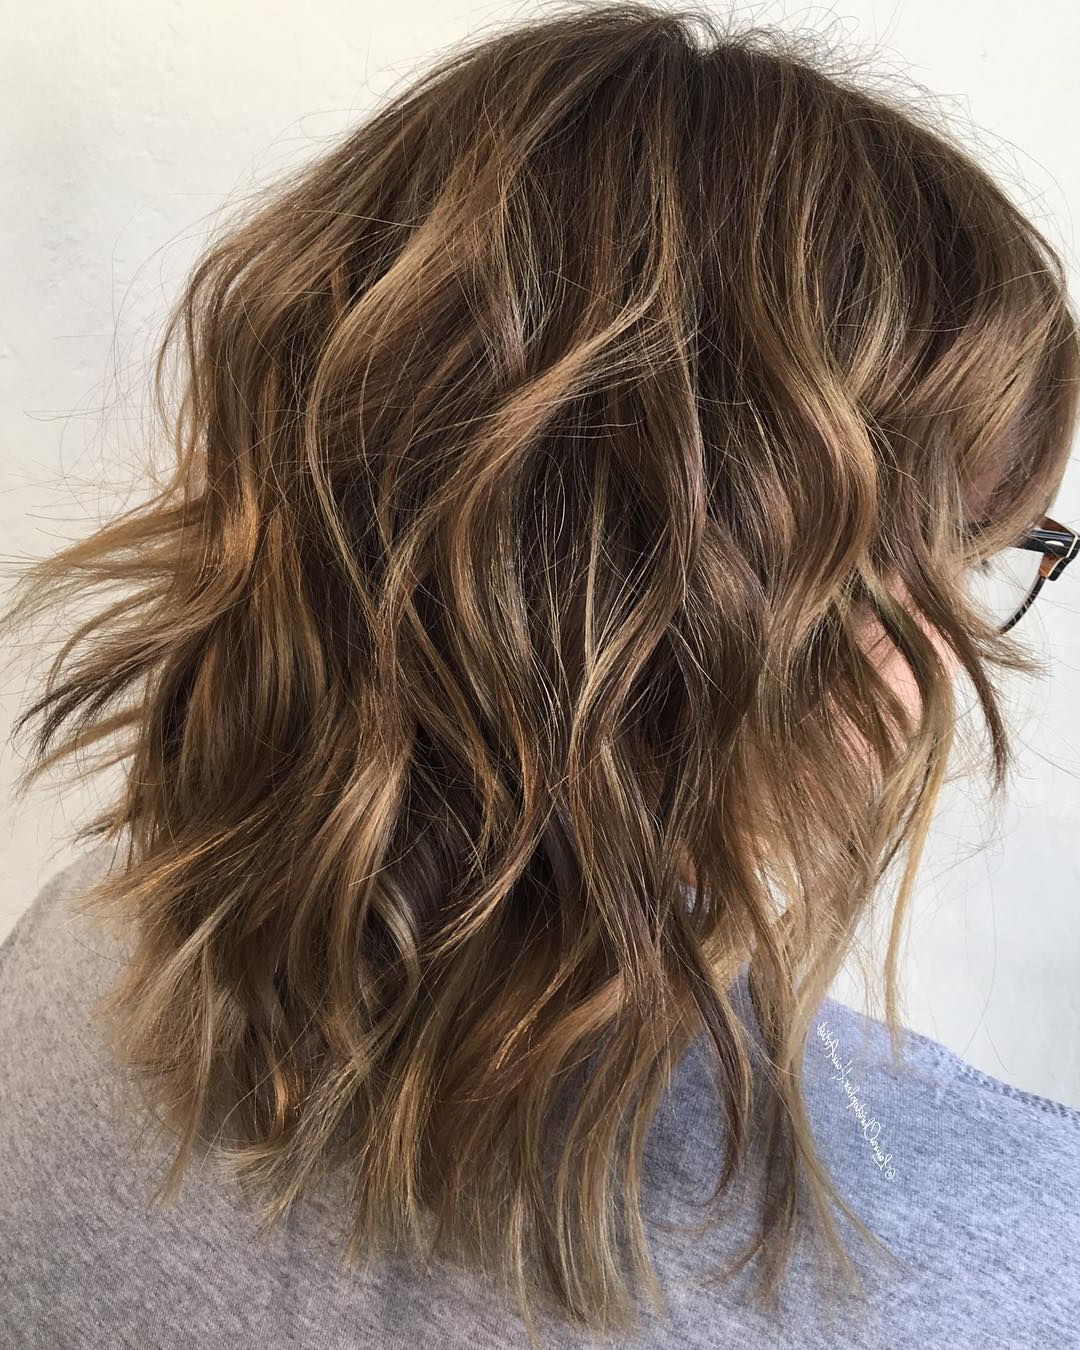 125 Coolest Shag Haircuts For All Ages – Prochronism Pertaining To Best And Newest Natural Layers And Ombre Highlights Long Shag Hairstyles (Gallery 19 of 20)